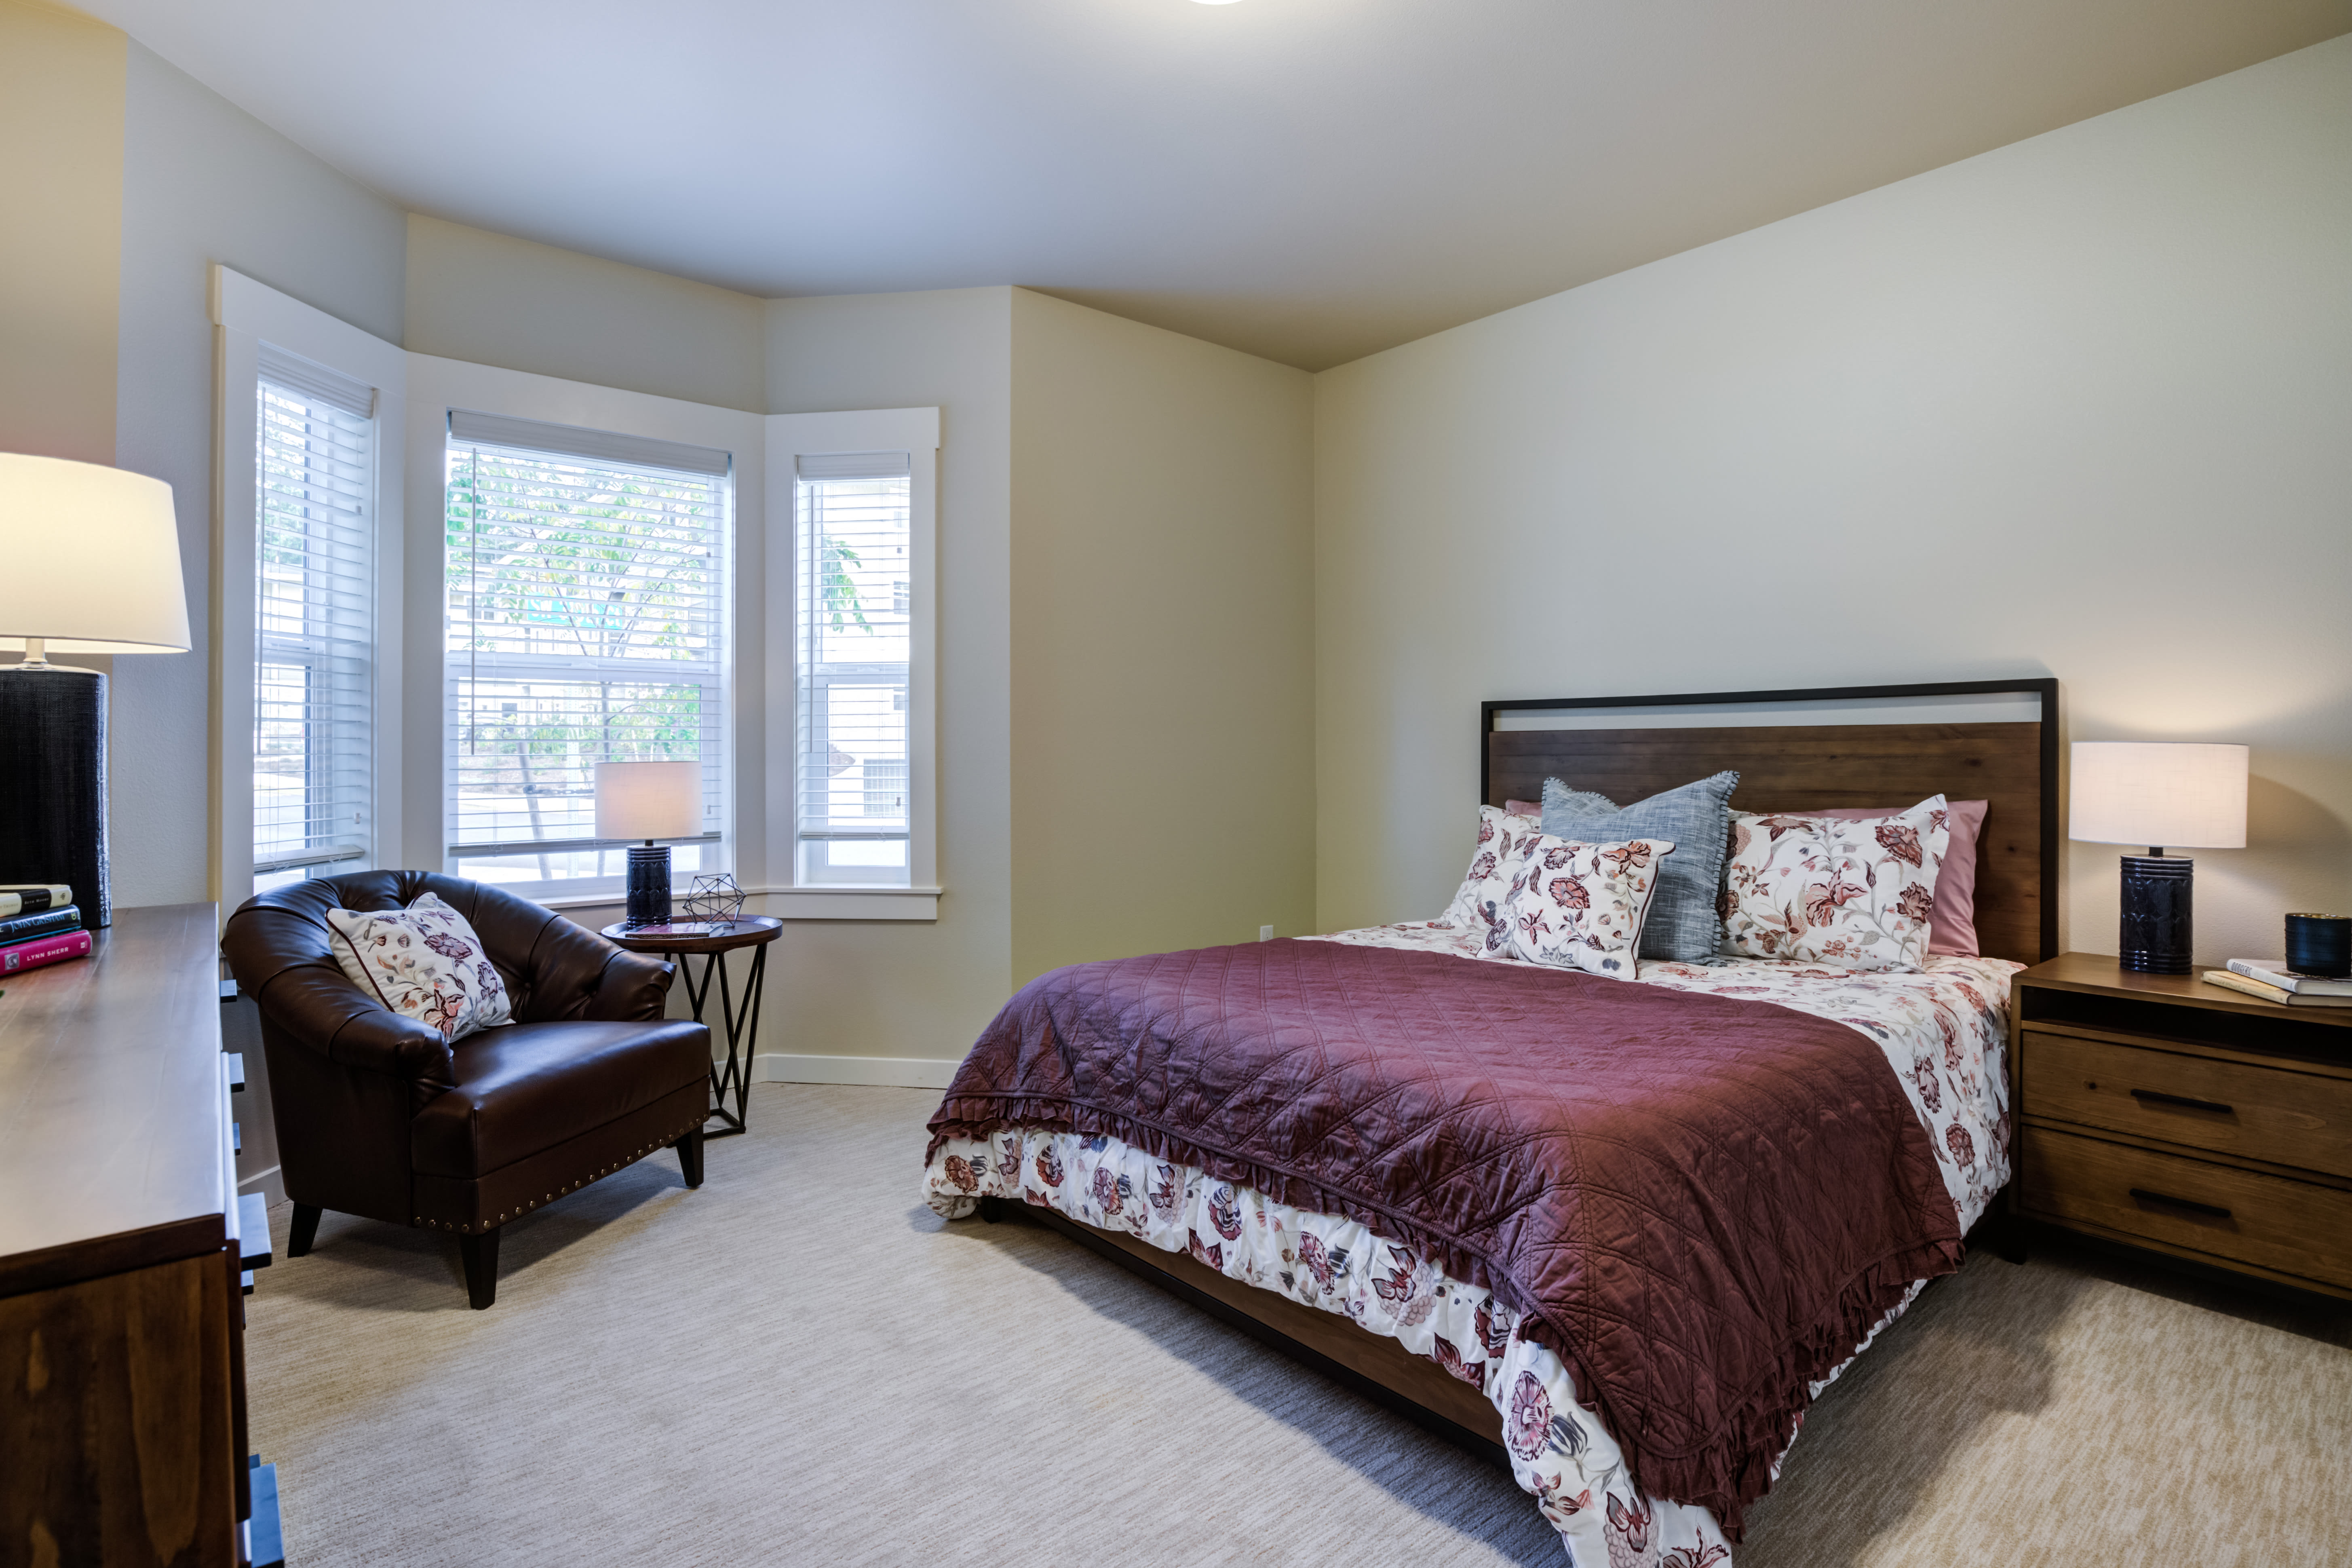 Independent Living Cottage Bedroom One at Mirror Lake Village Senior Living Community in Federal Way, WA